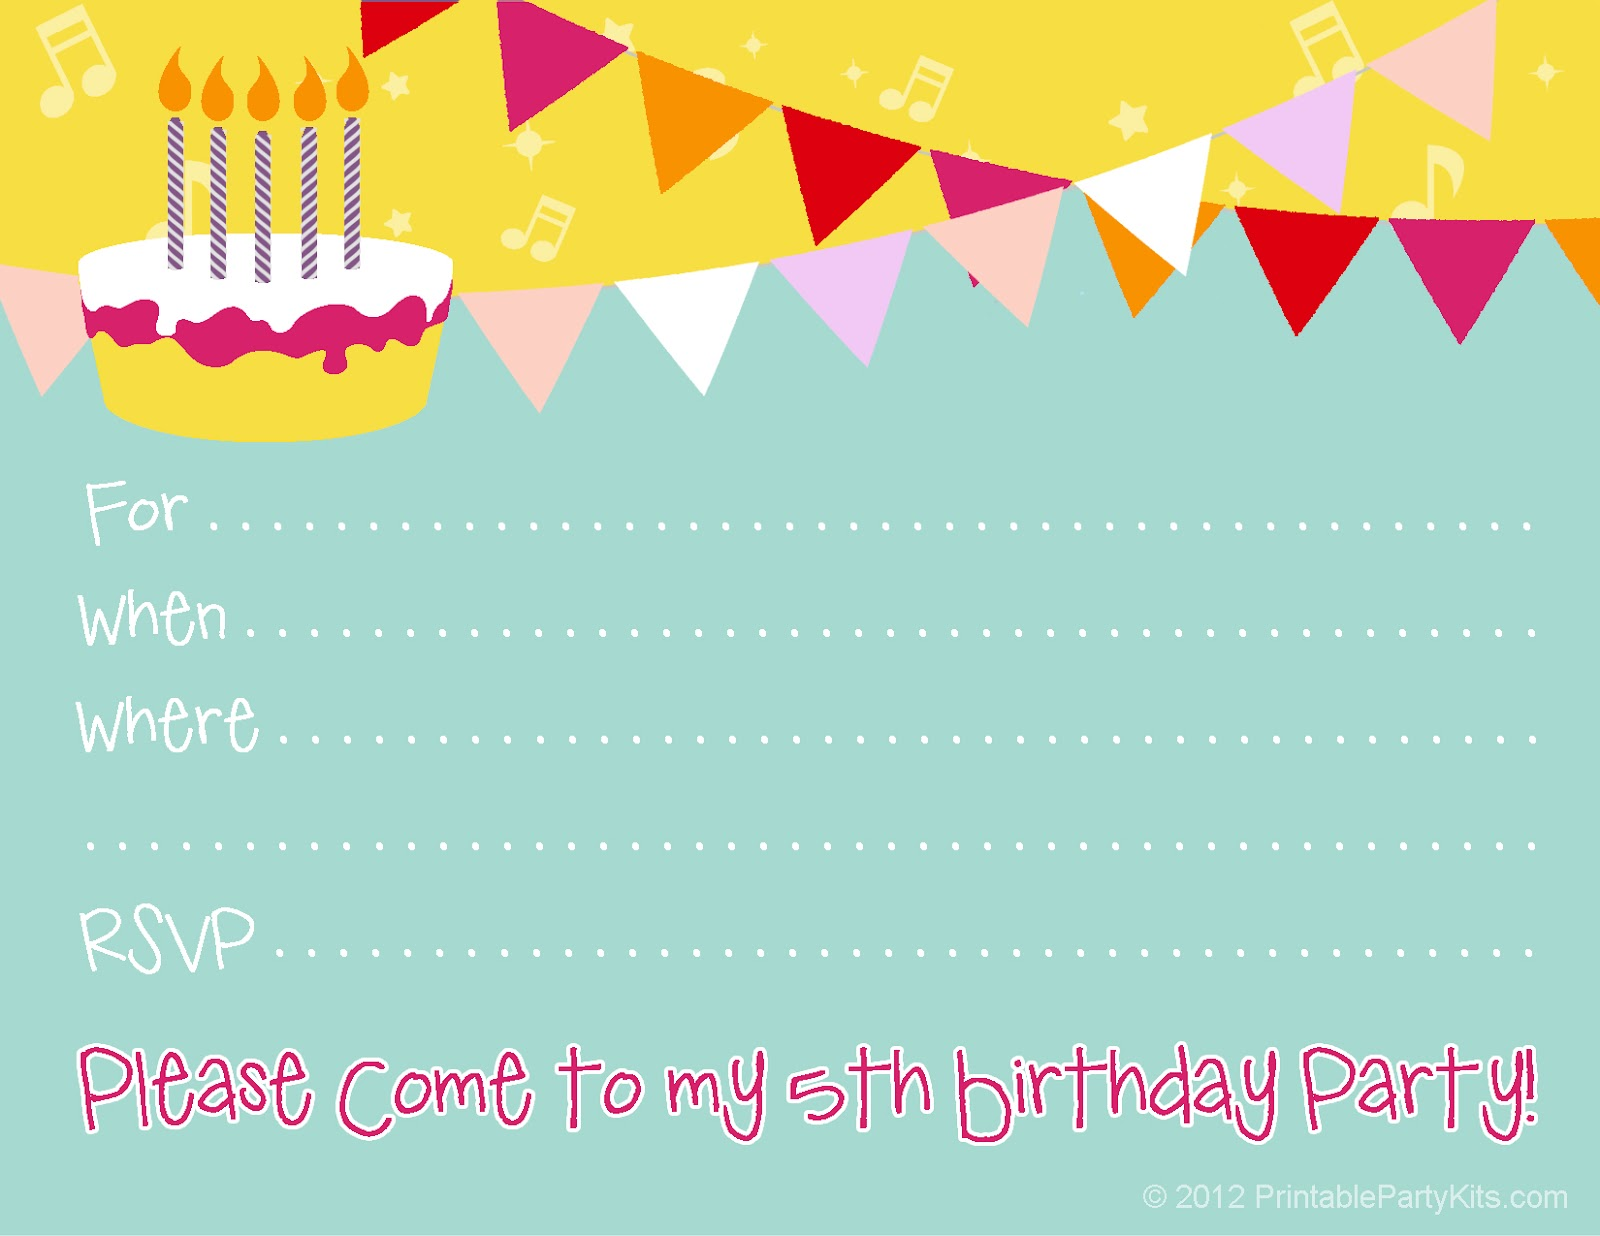 birthday party invite templates printable th birthday party invitations printable invite for a 5th birthday party